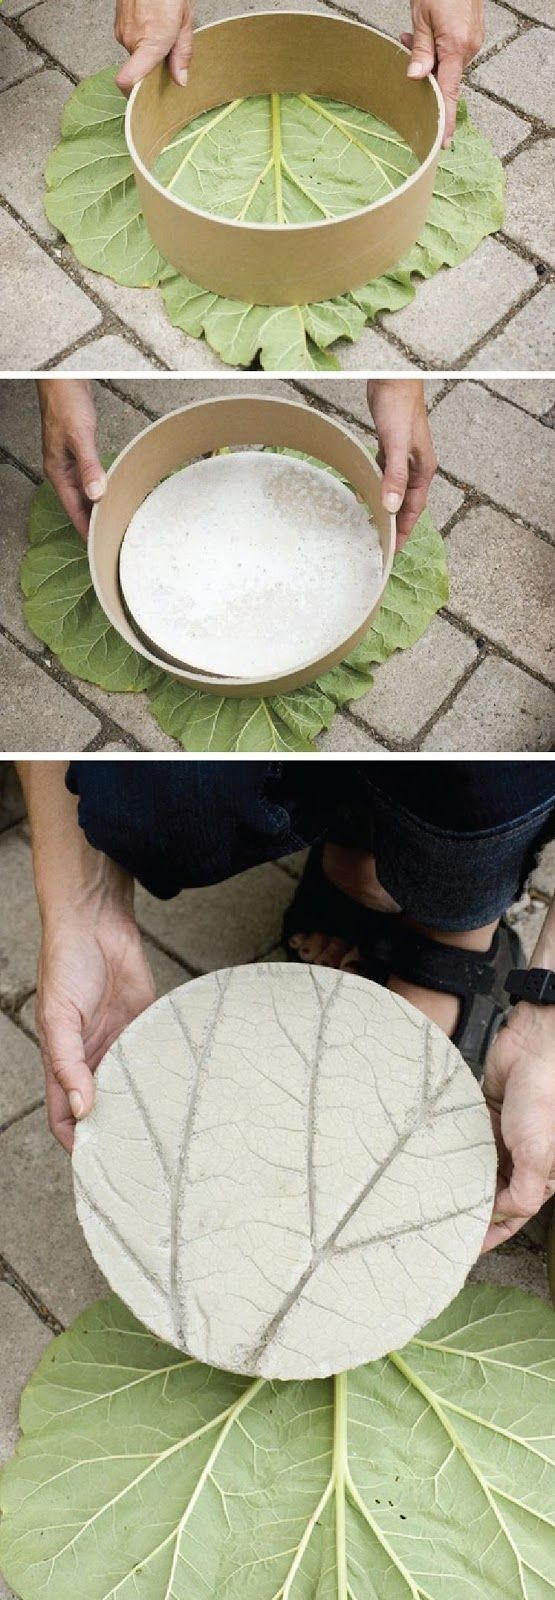 DIY Garden Stone  Since it is fall… it could be cool to use autumn leaves...